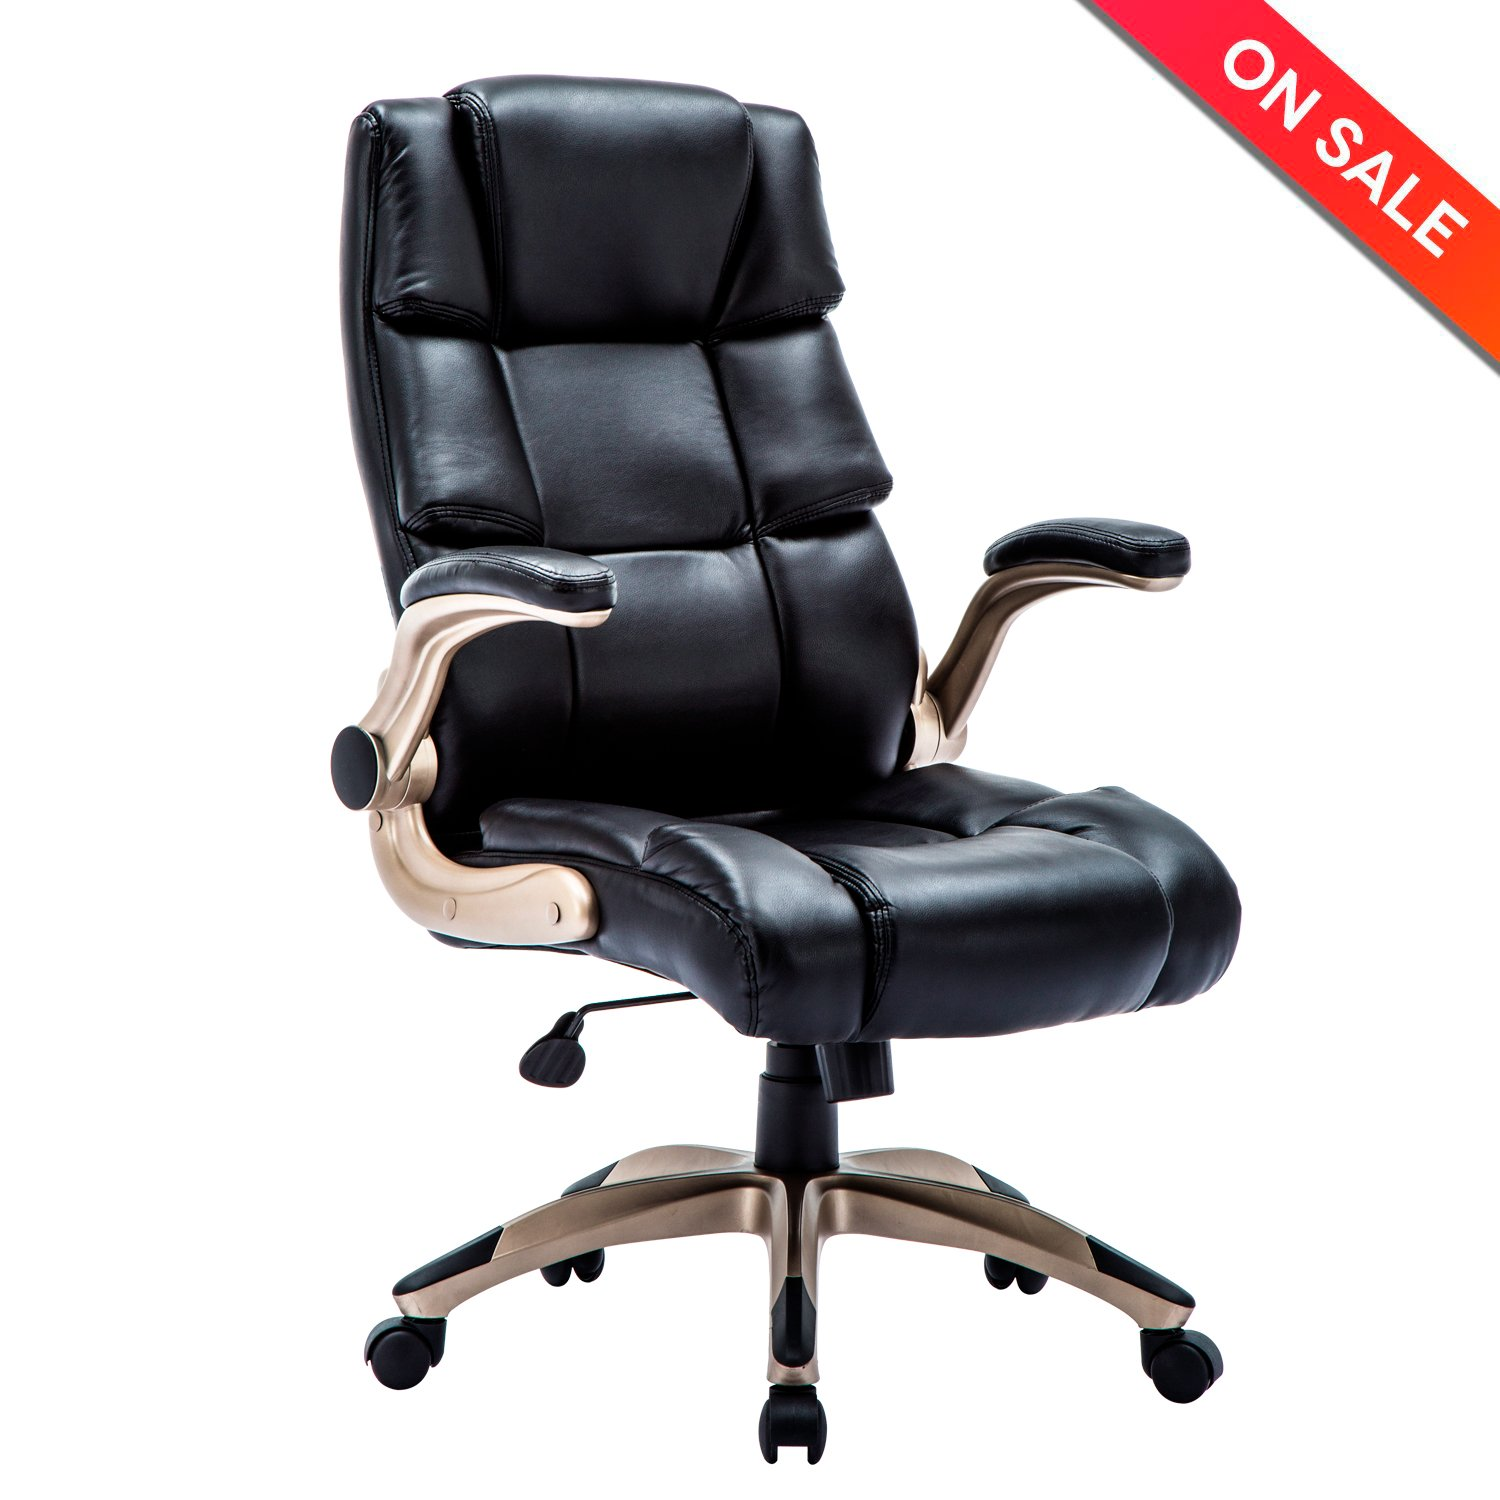 Amazoncom Lch Ergonomic High Back Leather Office Chair  Adjustable